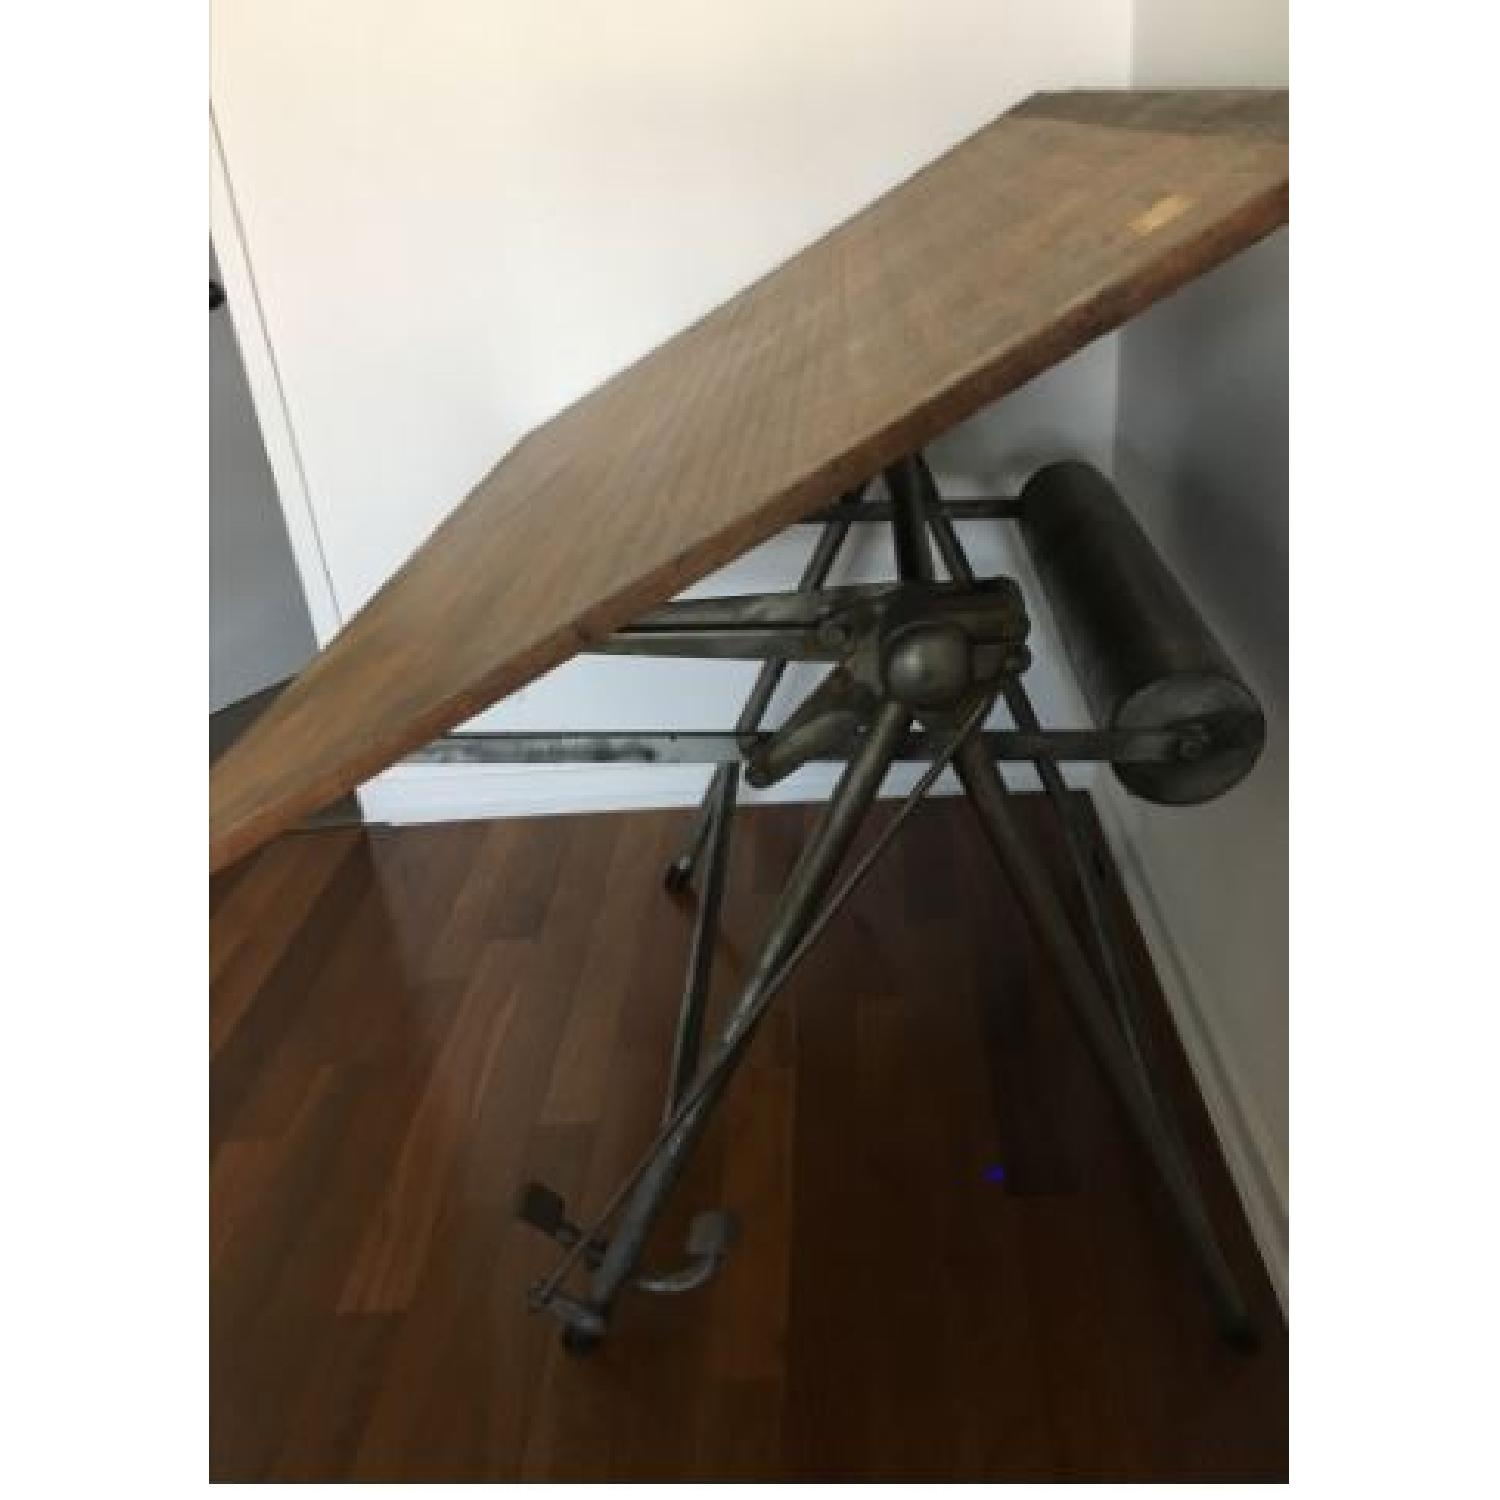 Vintage Industrial Architect Table - image-2